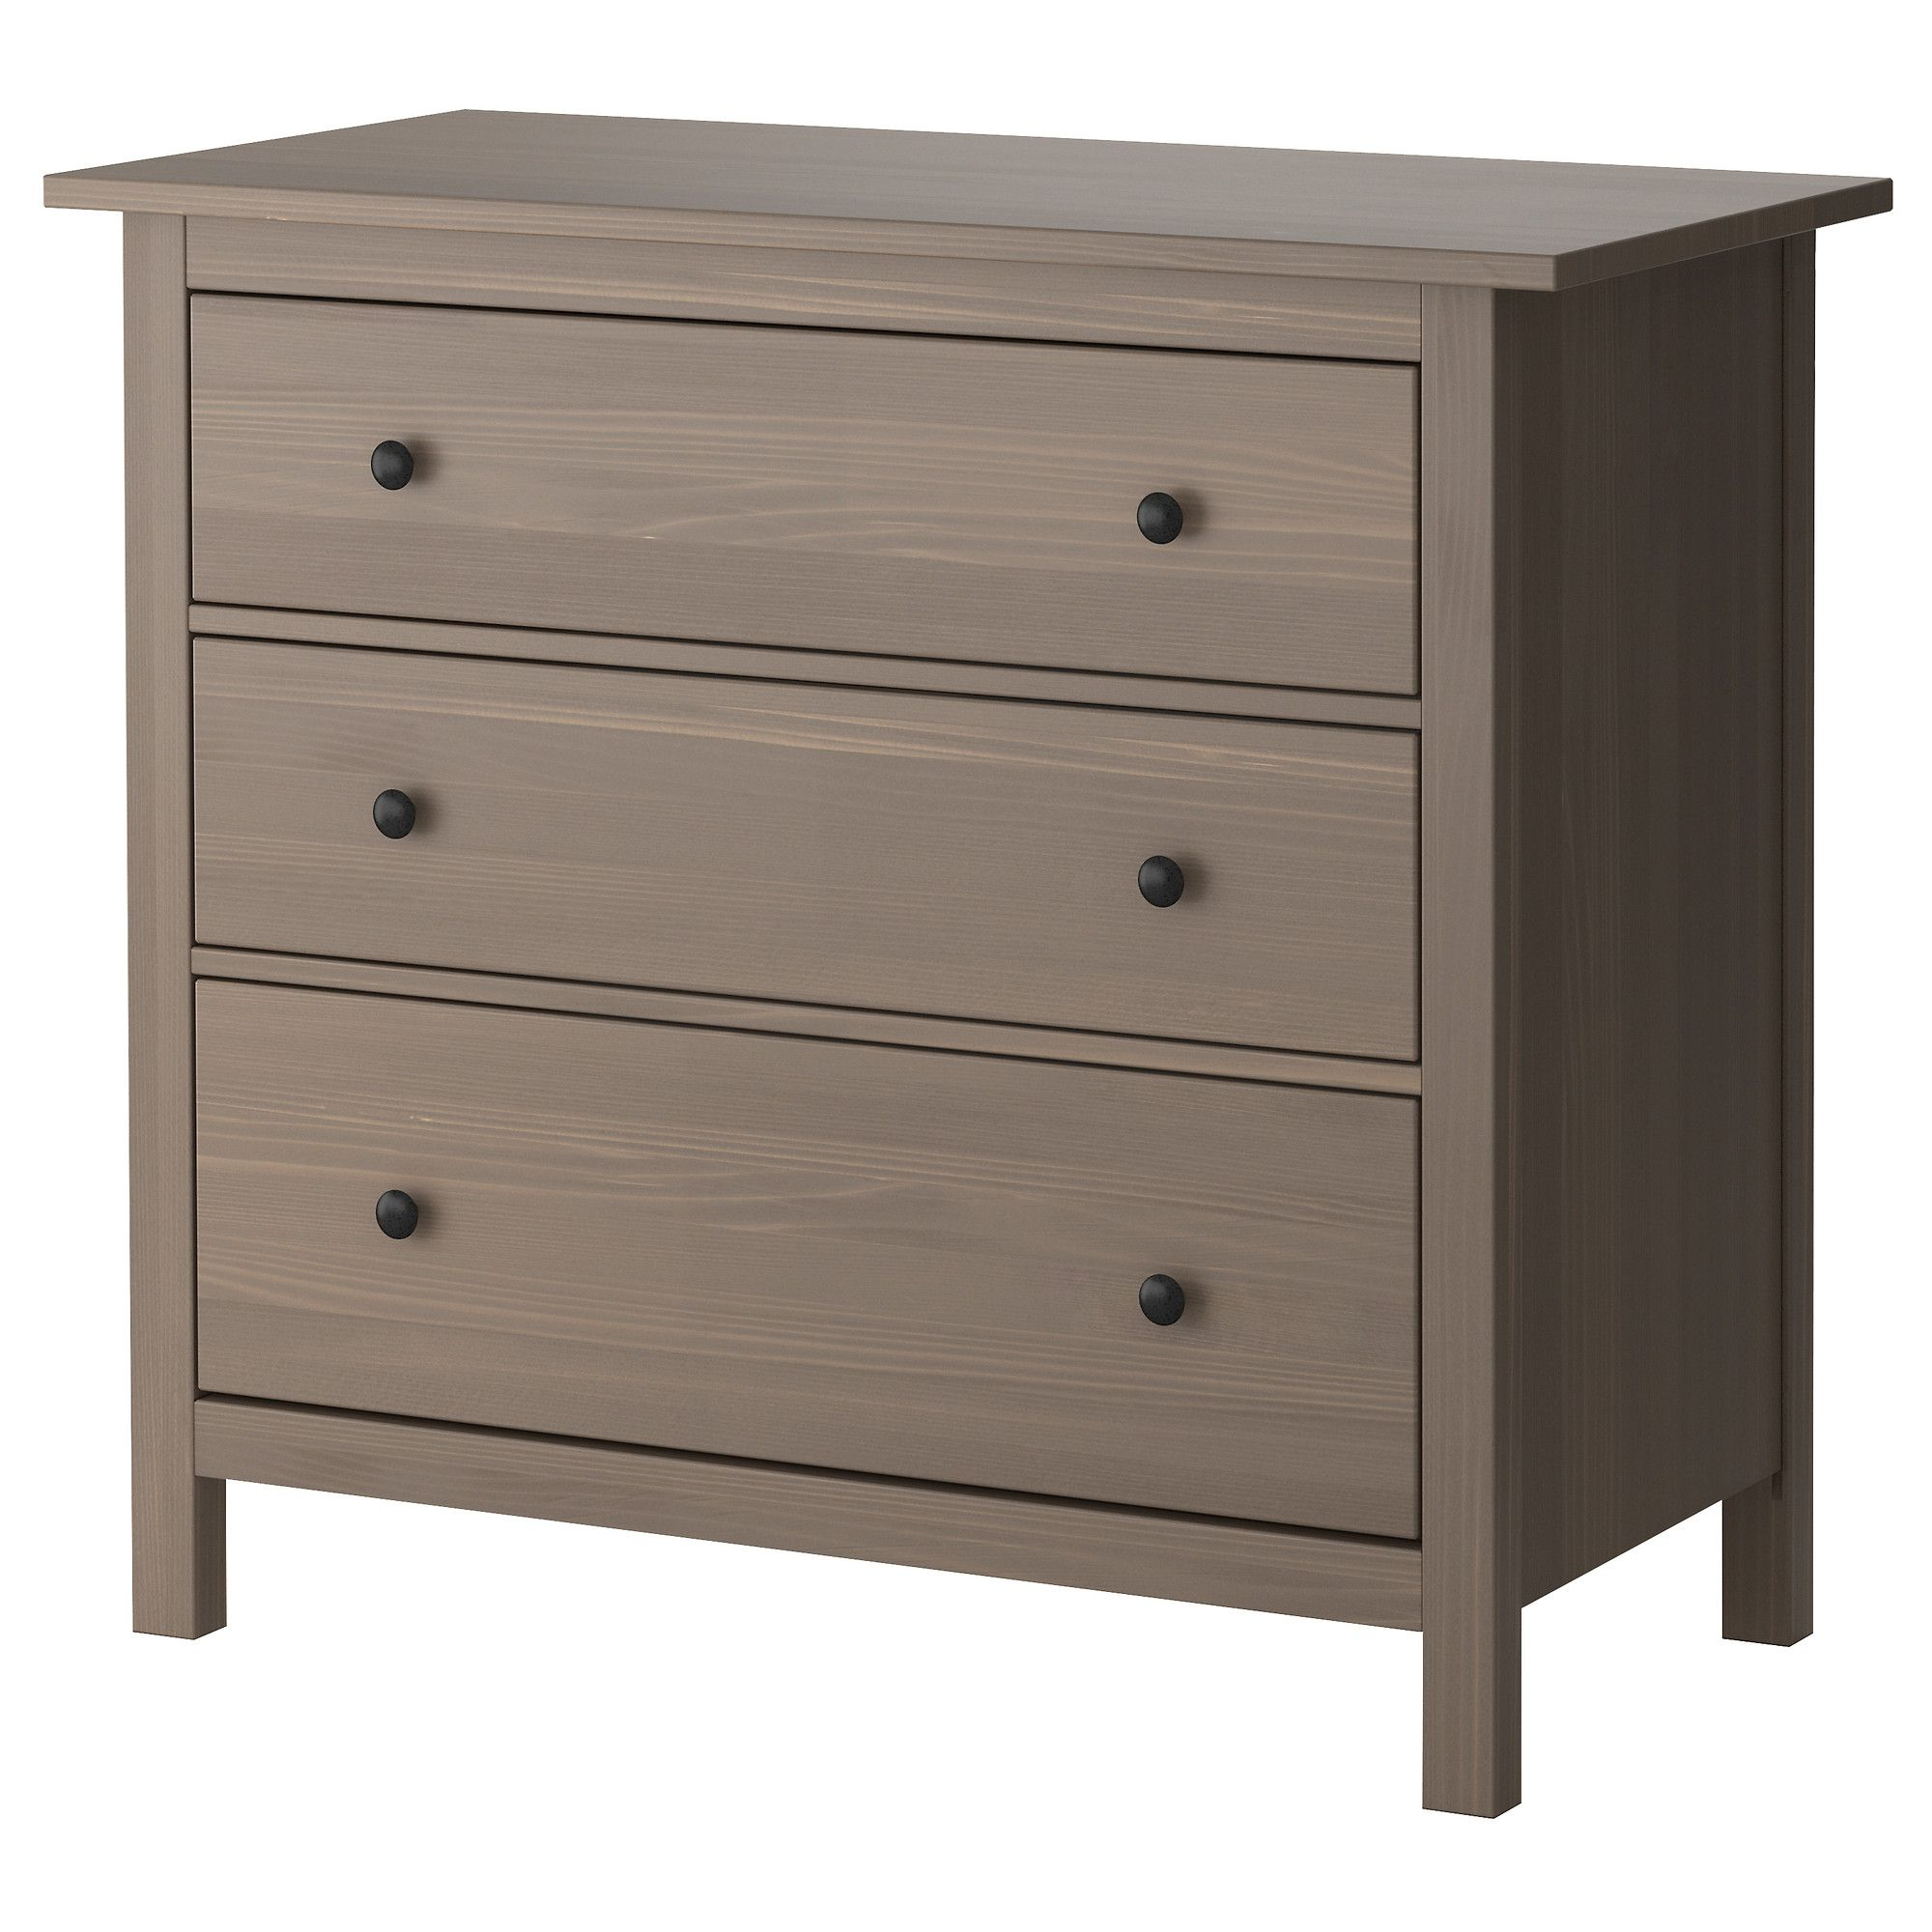 hemnes 3 drawer chest ikea width 42 1 2 depth 19 5 8 height 37 3 8 149 baby. Black Bedroom Furniture Sets. Home Design Ideas